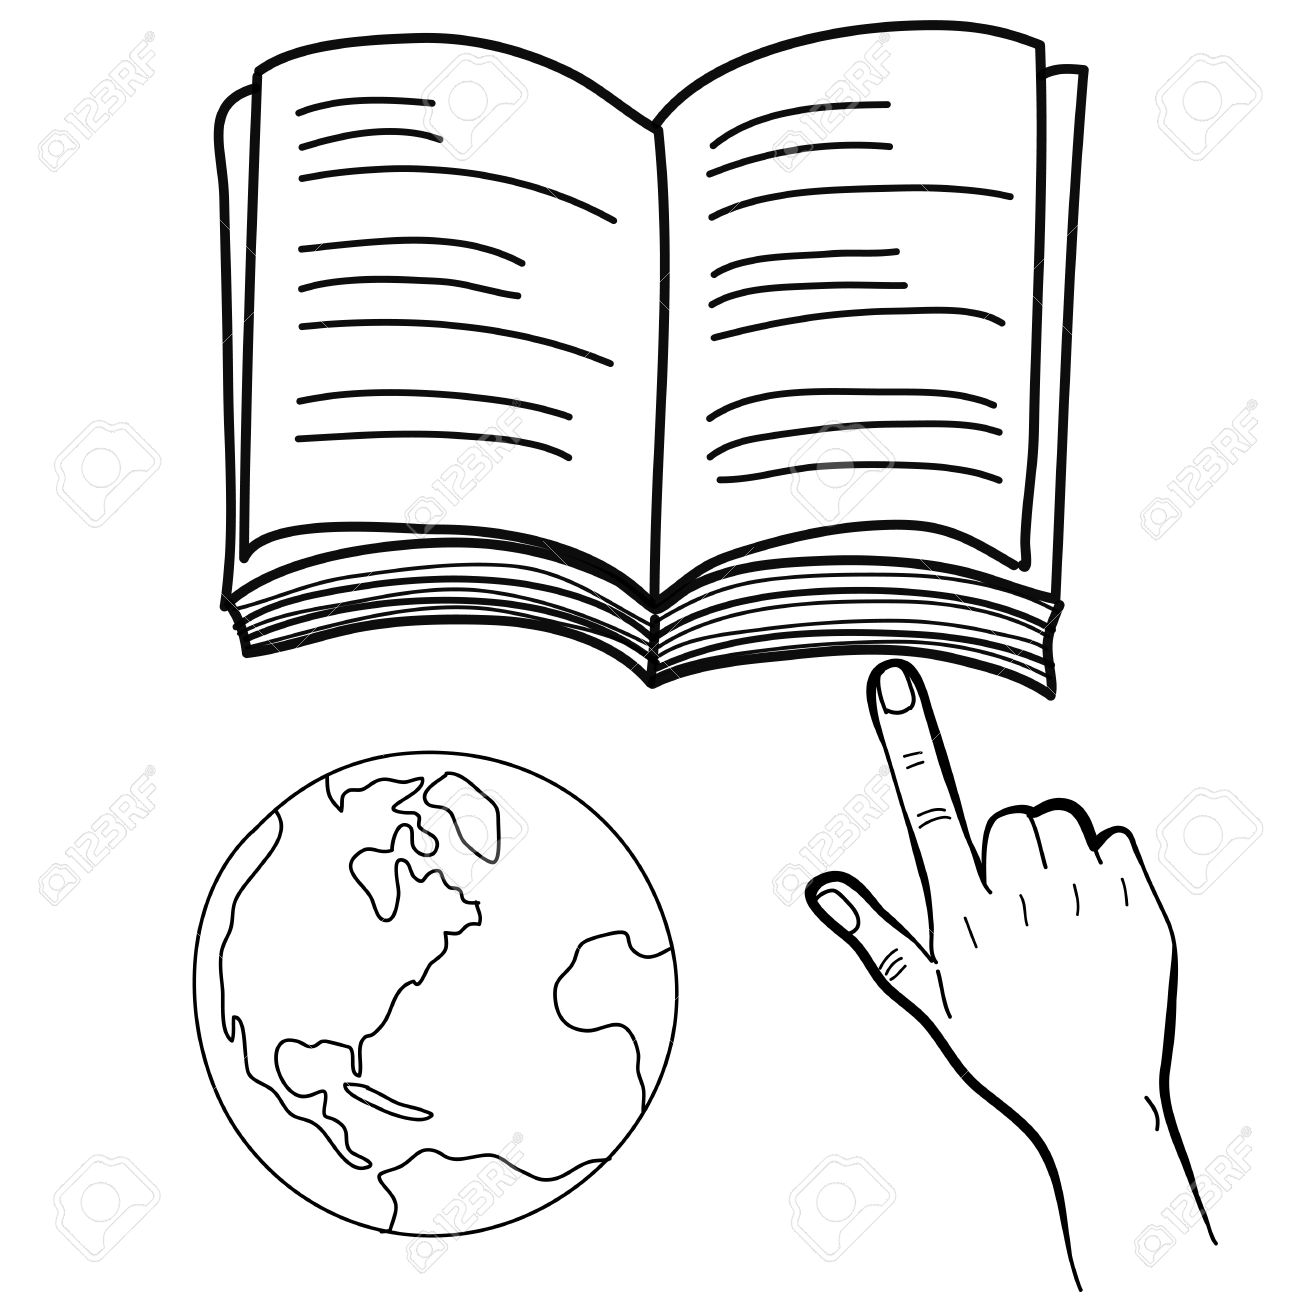 hand drawing freehand sketch hand pointing book and globe vector for design Stock Vector - 18817364